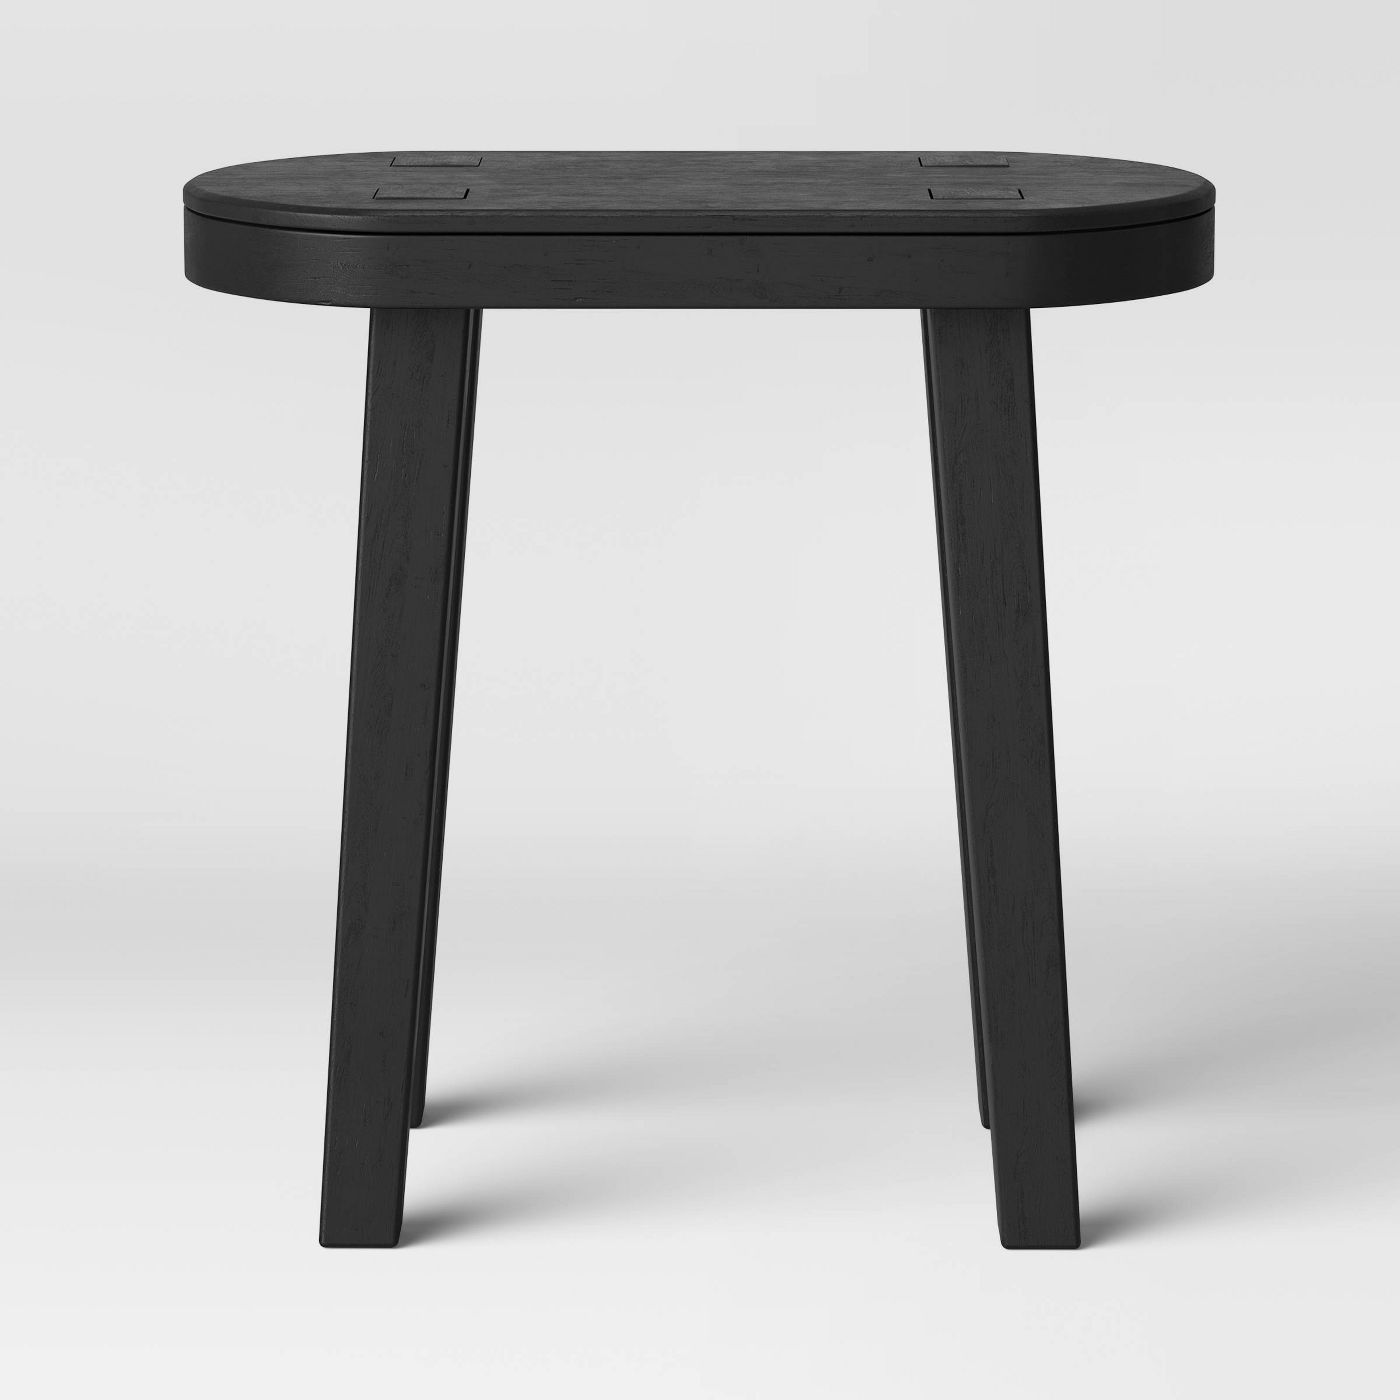 Woodland Carved Wood Accent Table - Black - Threshold™ - image 1 of 5